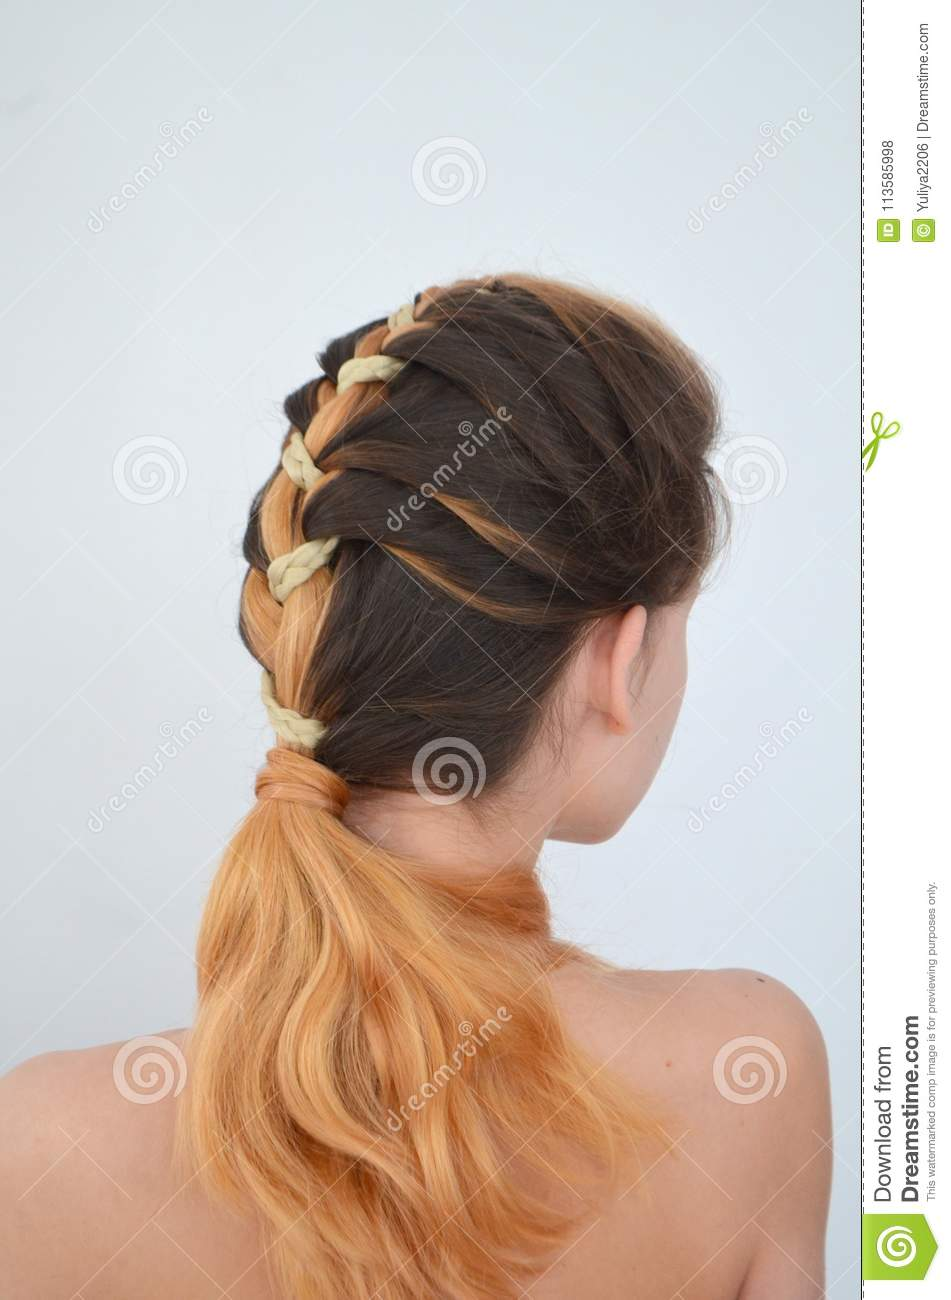 Mastery Of Weaving From Hair With Long Length Of Hair Stock Photo